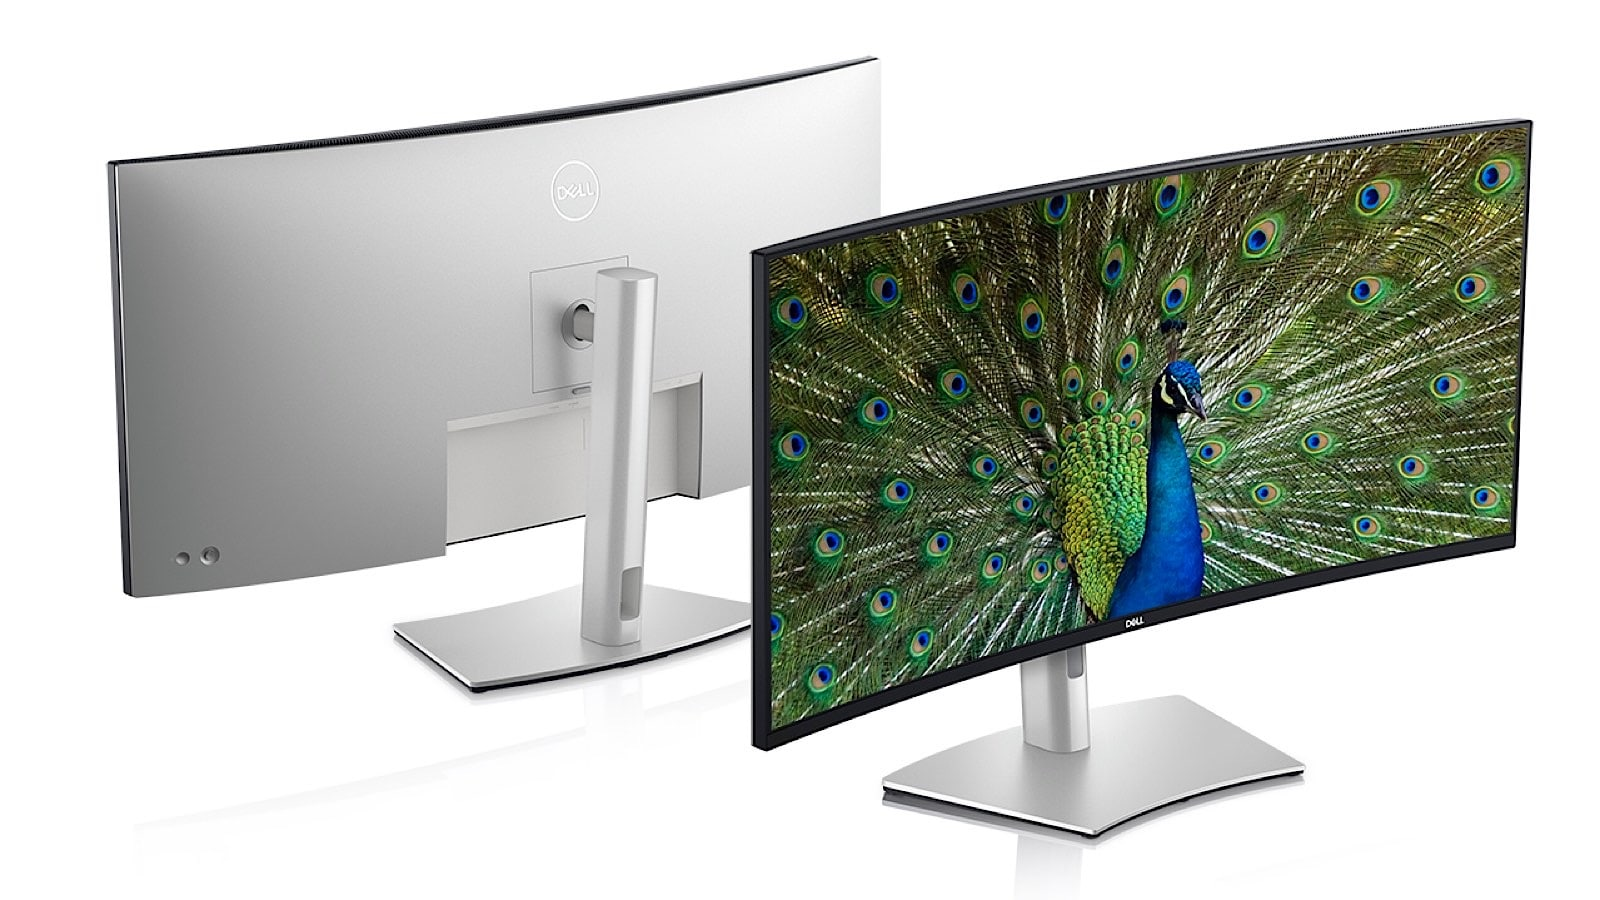 Dell's 40 inch 5K2K ultrawide screen announced at CES 2021